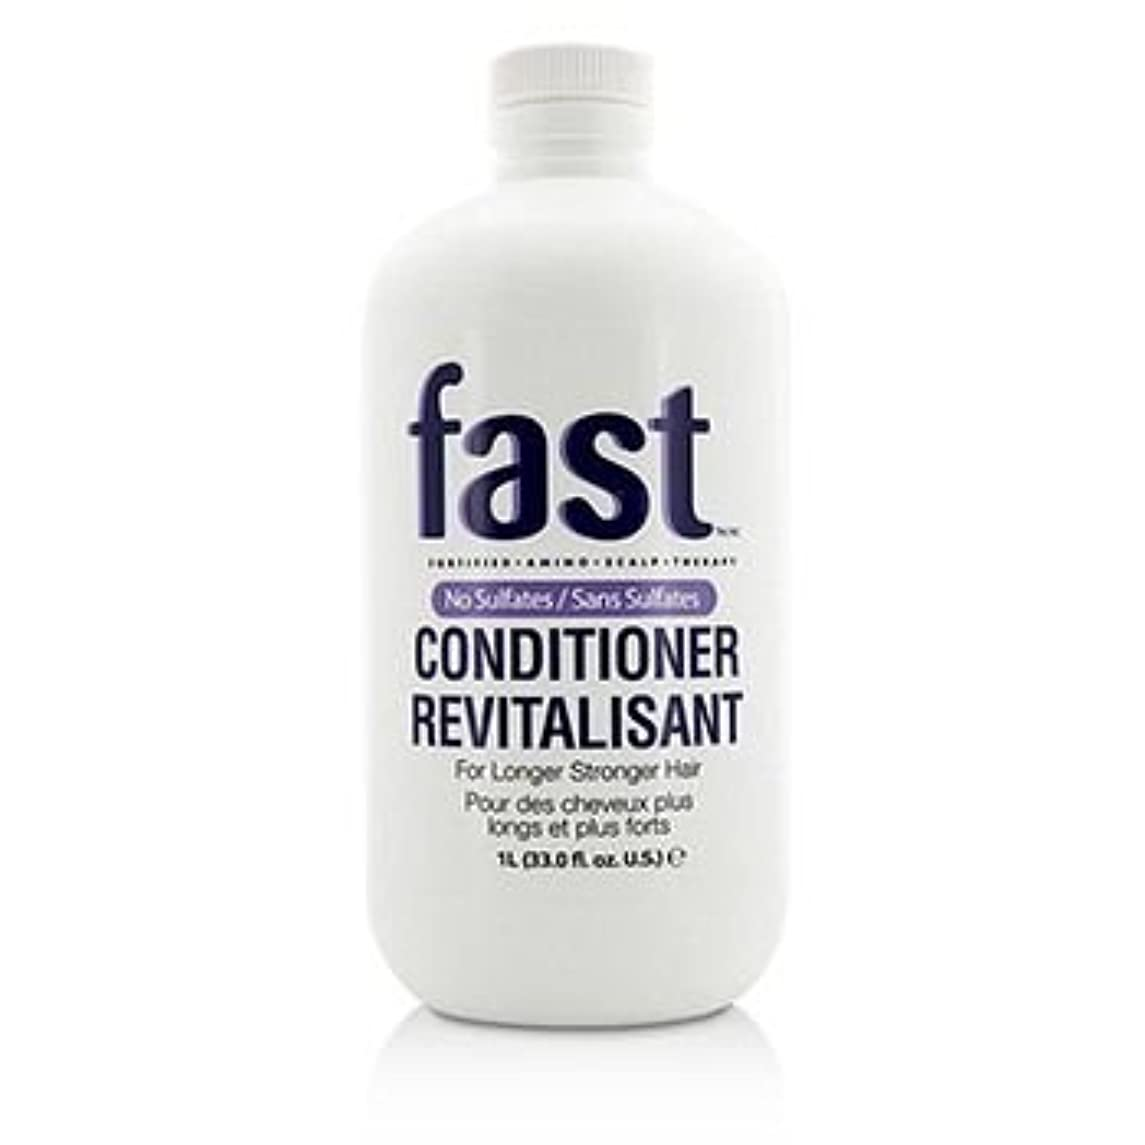 [Nisim] F.A.S.T Fortified Amino Scalp Therapy No Sulfates Conditioner (For Longer Stronger Hair) 1000ml/33oz